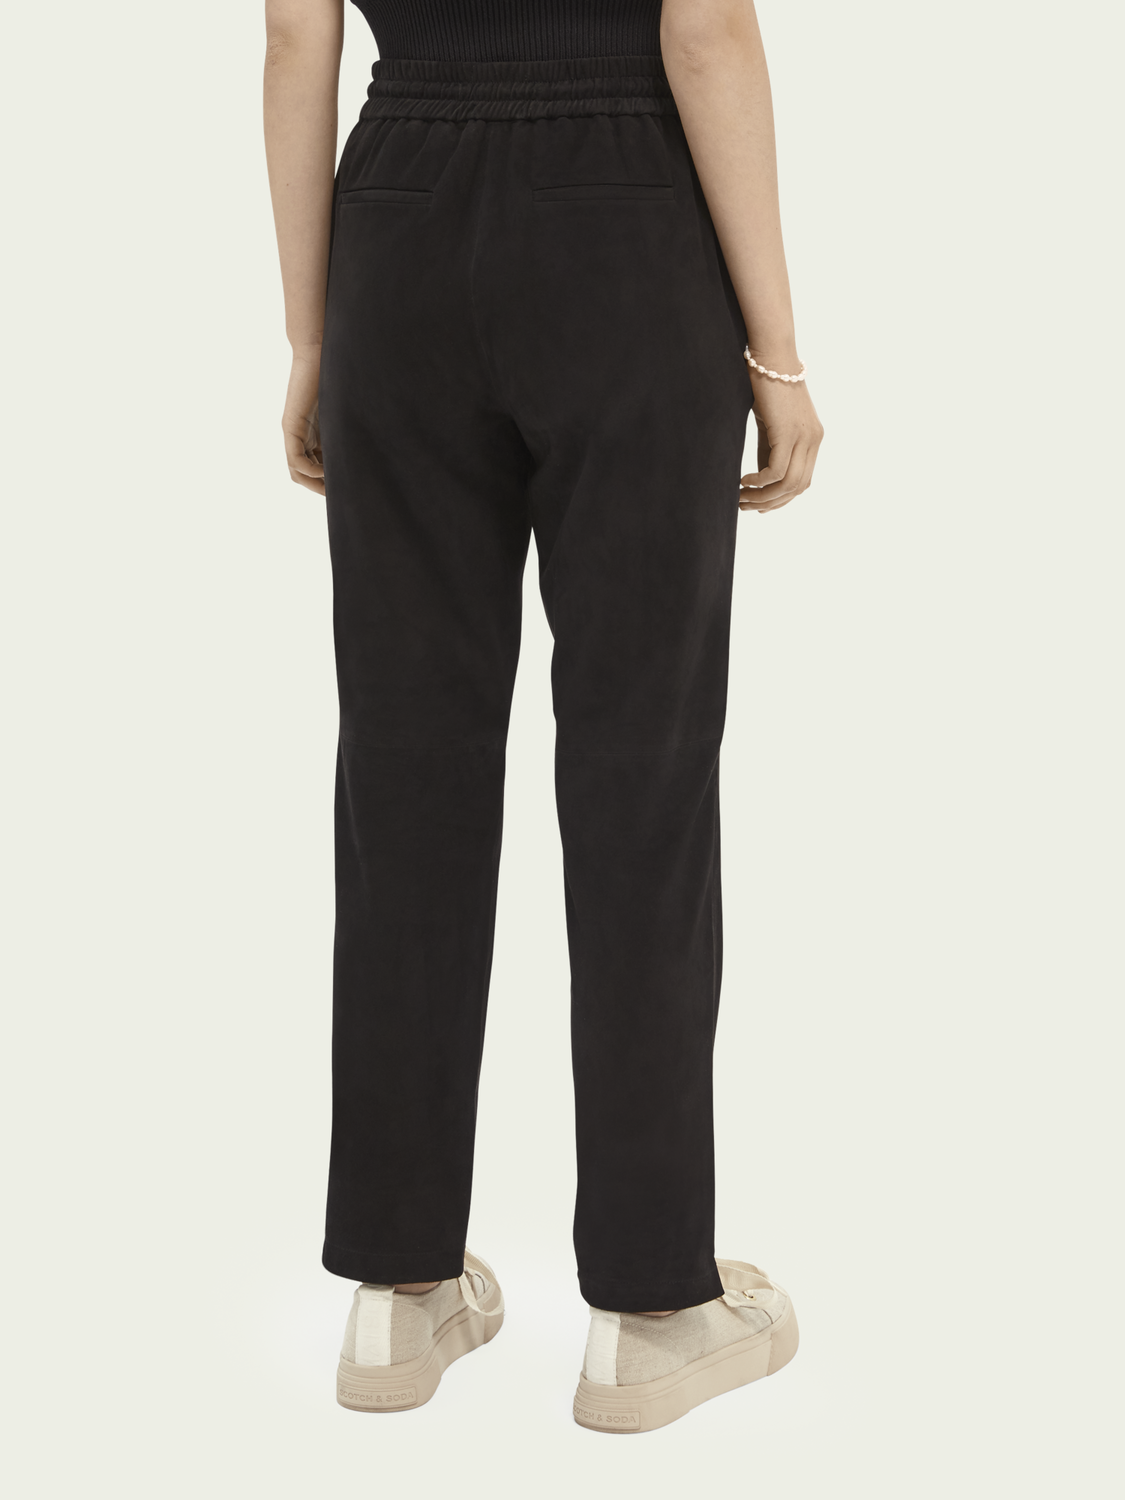 What's new Soft suede trousers